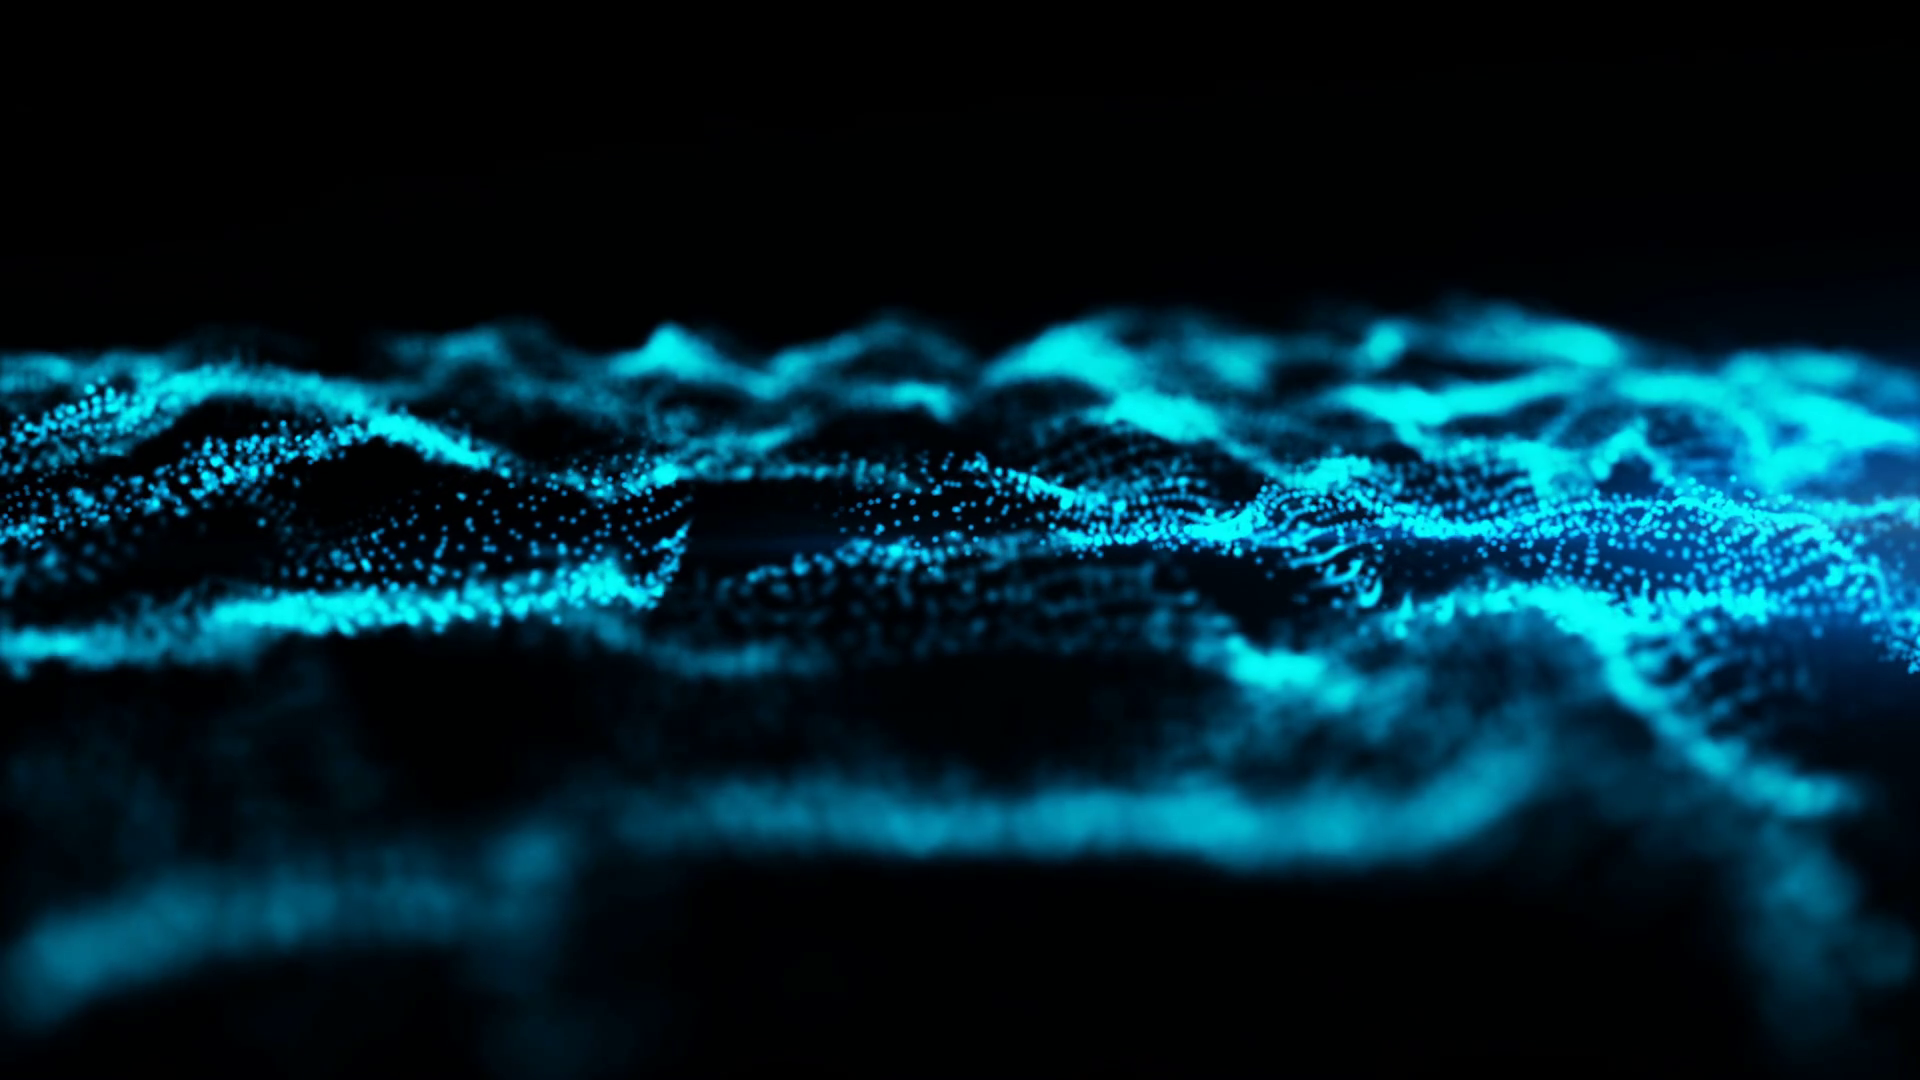 Digital Loop Wave Particles Flow Abstract Background Blue